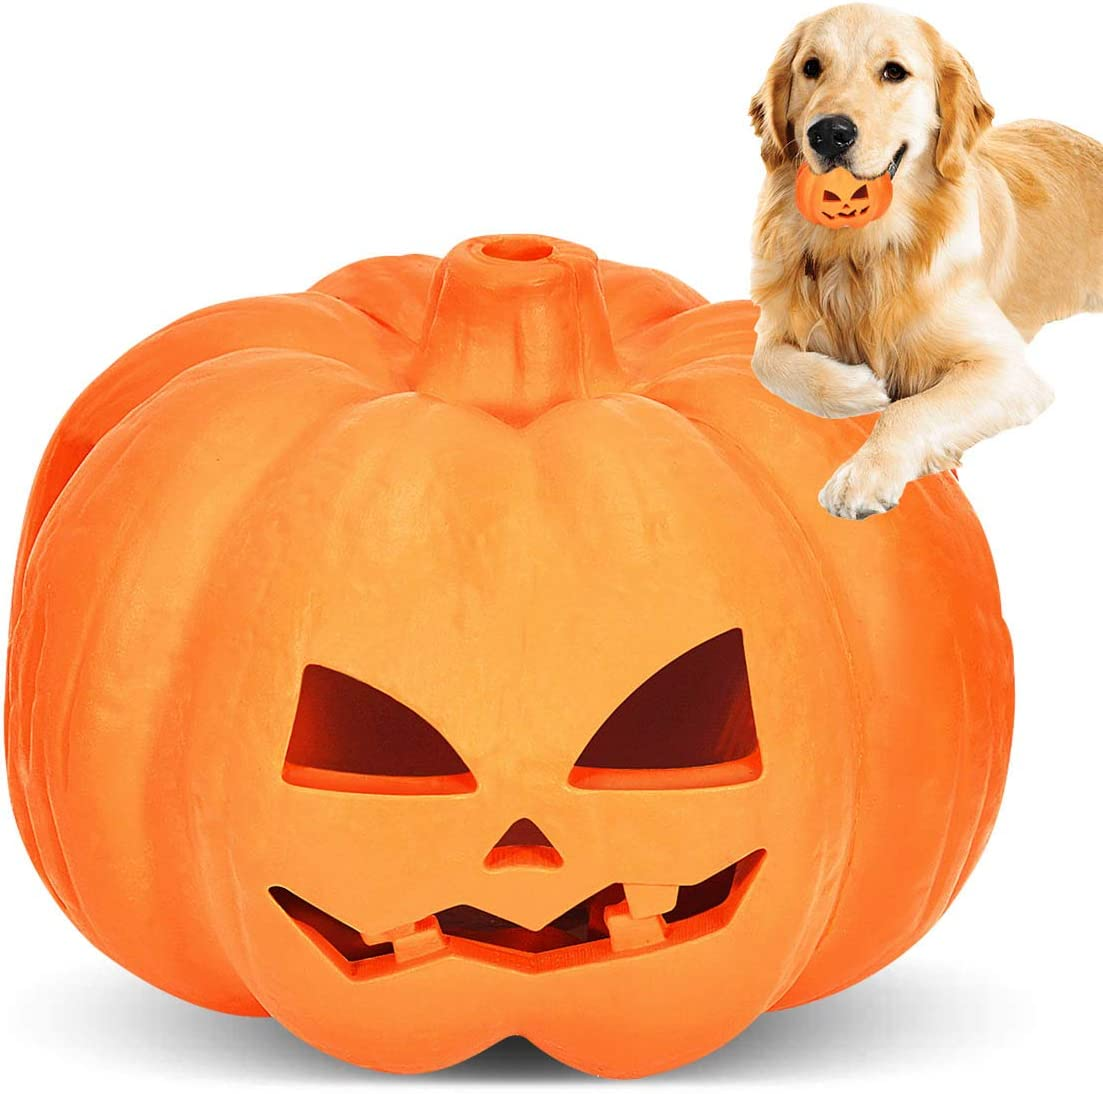 Halloween Pumpkin Dog Industry No. 1 Chew 40% OFF Cheap Sale Toy Tough Aggressi Toys for